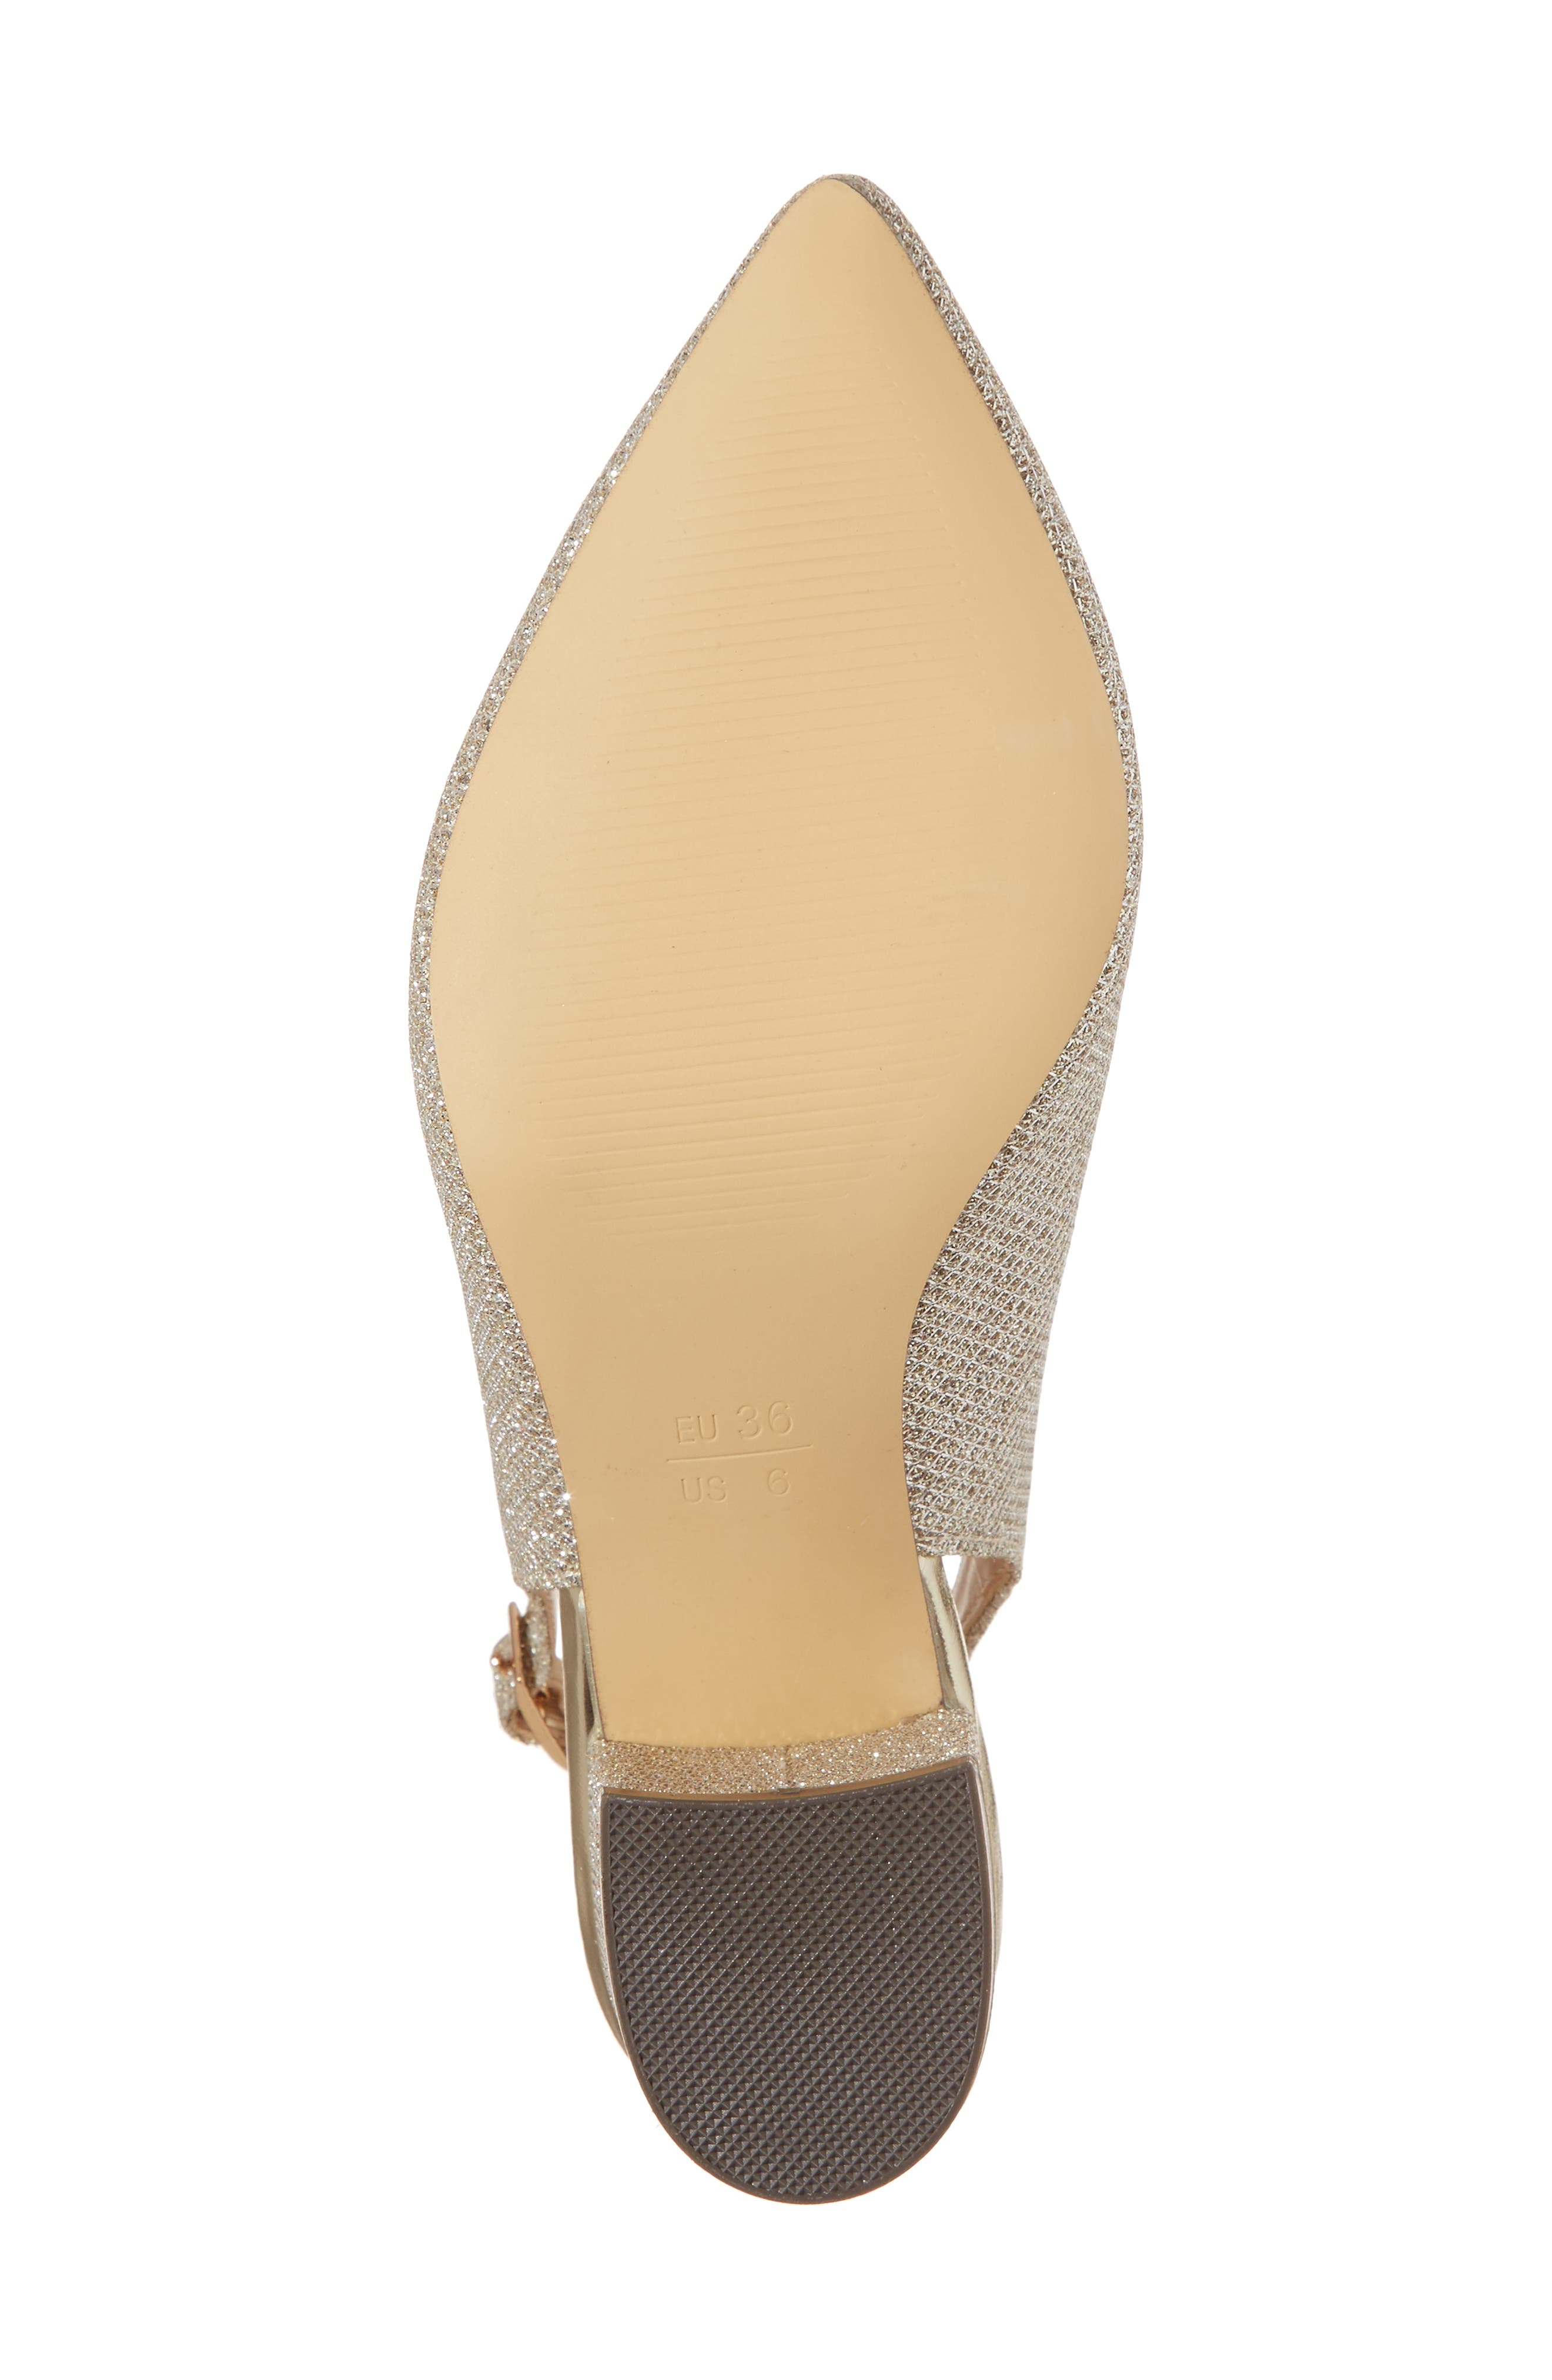 Aubree Slingback Pump,                             Alternate thumbnail 6, color,                             Champagne Glitter